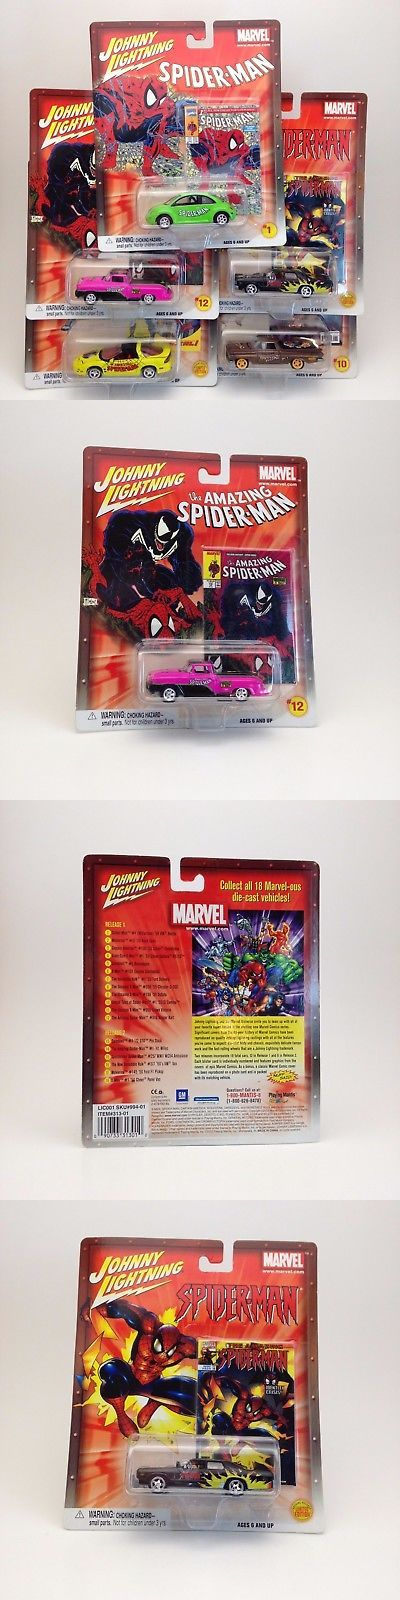 Spider-Man 146094: Marvel Spider-Man Lot Of 5 Johnny Lightning Cars 2002 Toy Figure Spiderman Rare -> BUY IT NOW ONLY: $40 on eBay!